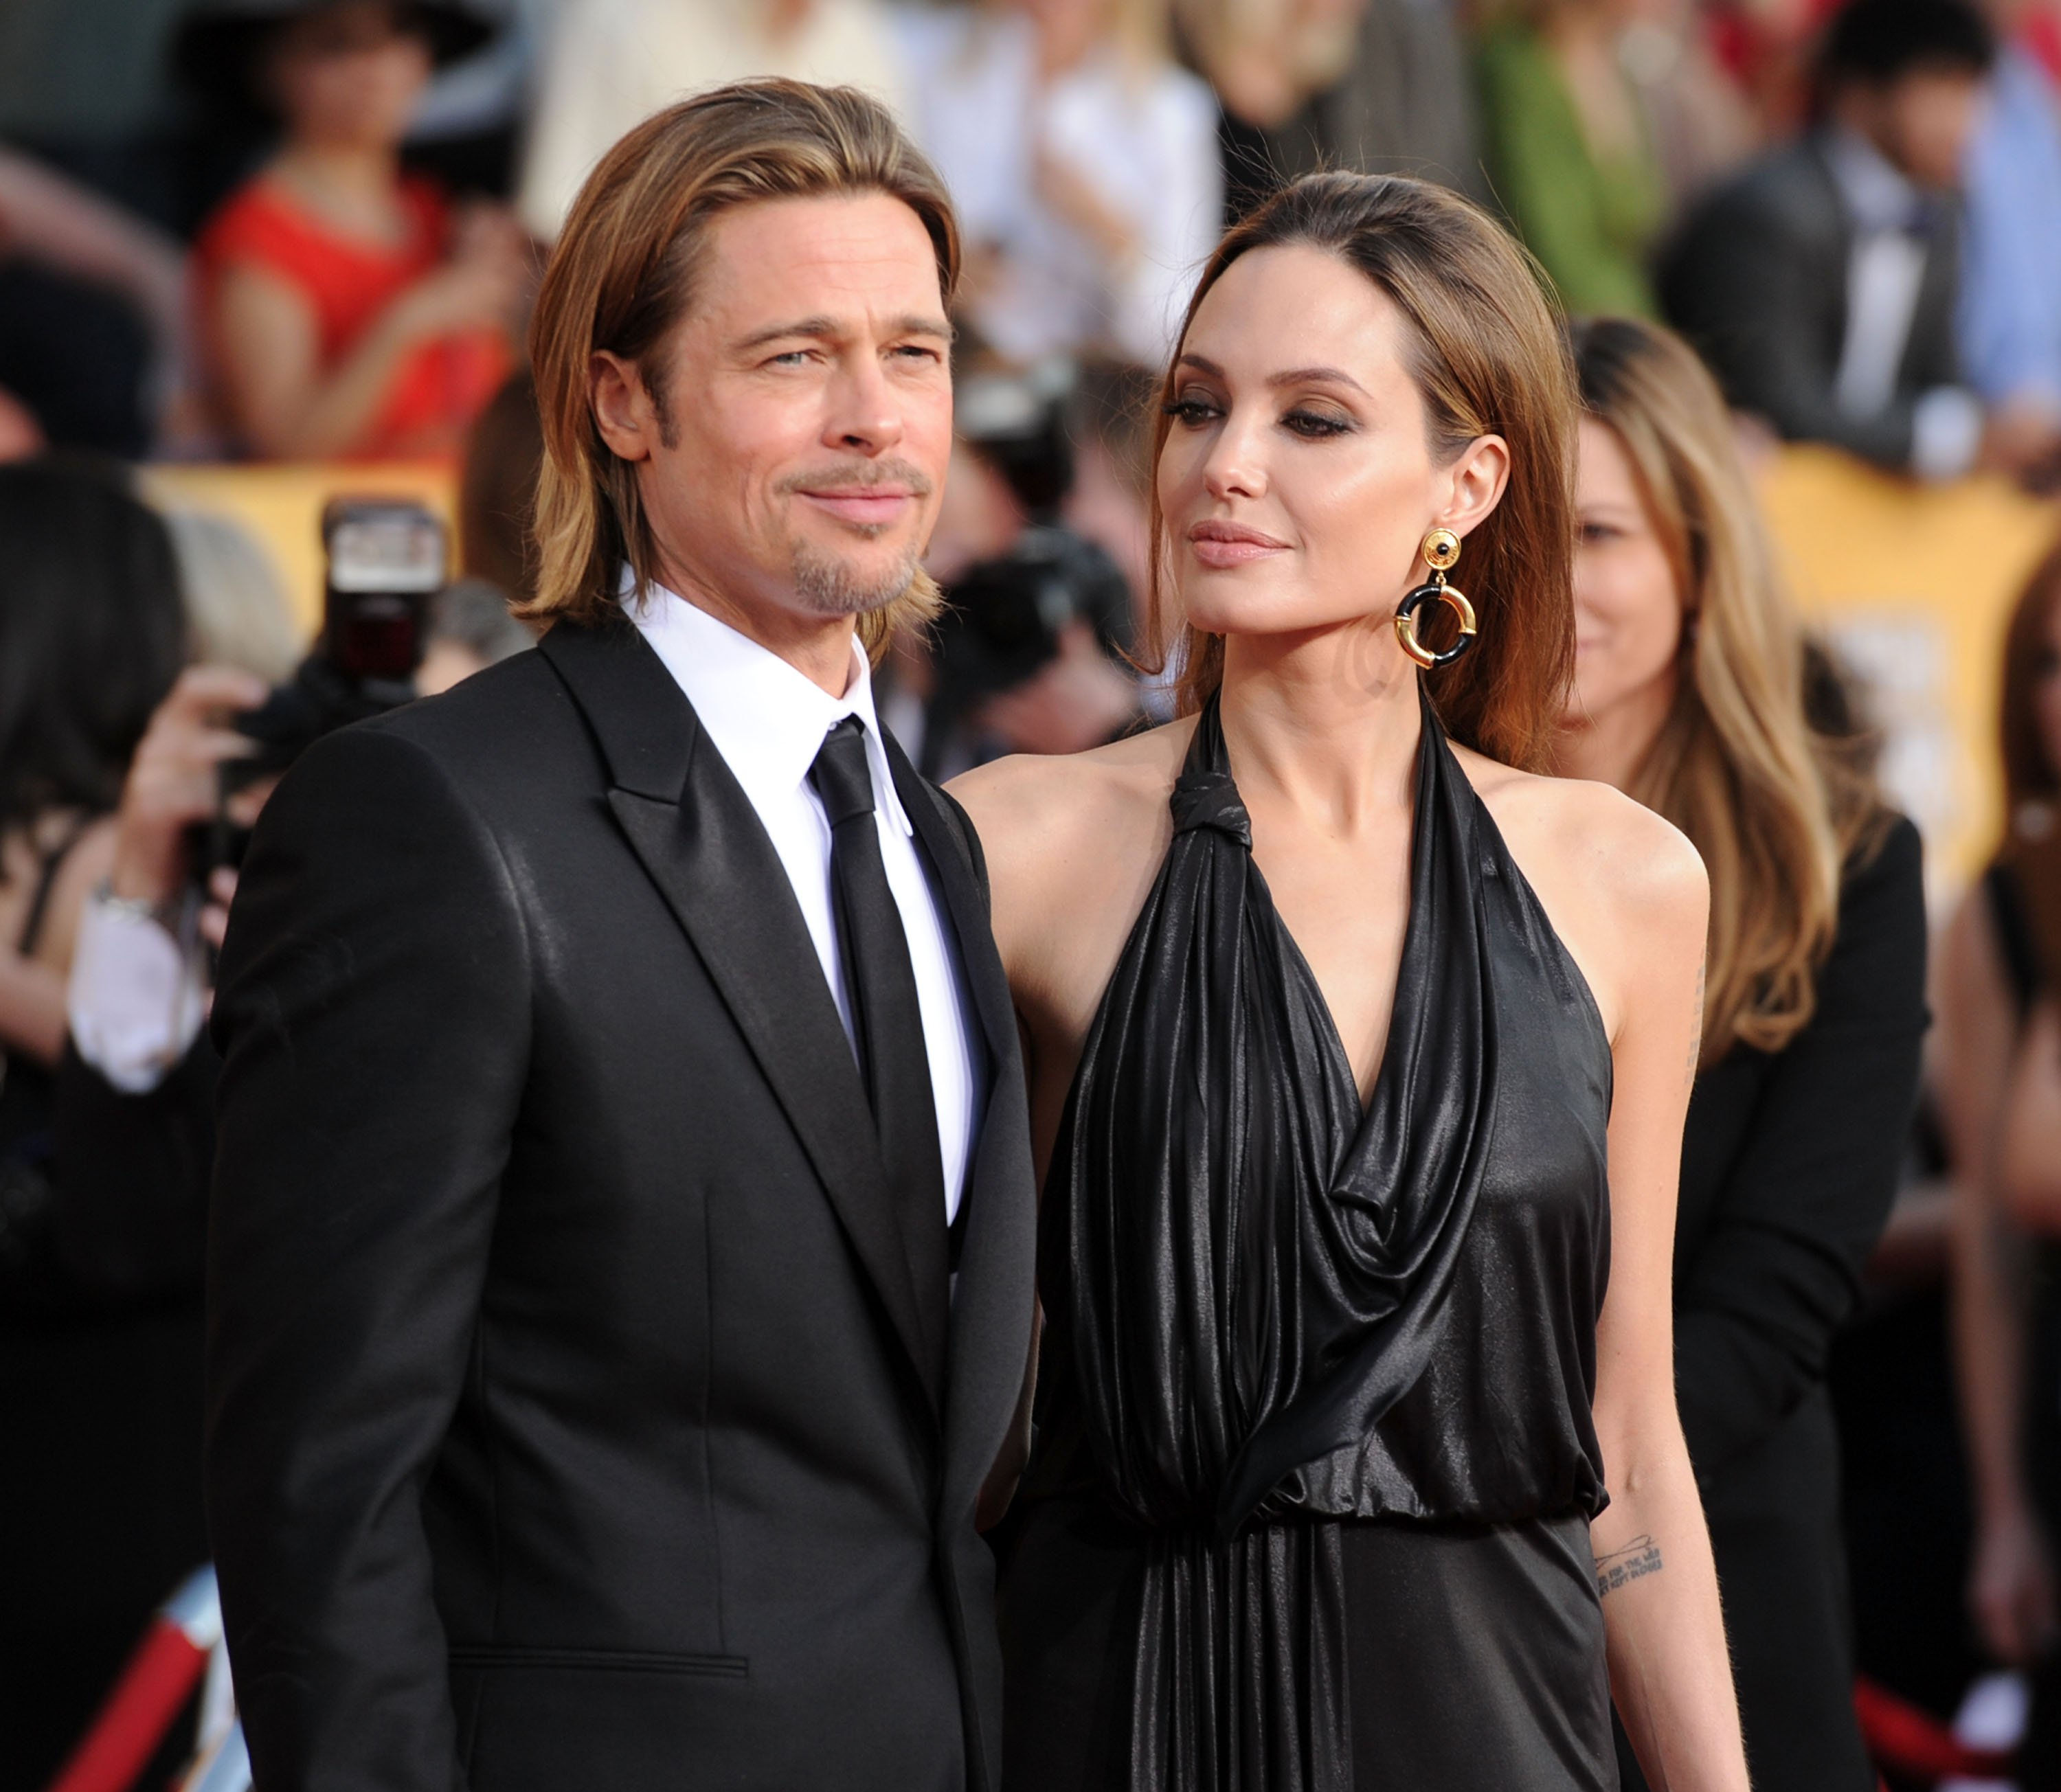 Image Credits: Getty Images | Angelina Jolie didn't believe in sexual fidelity